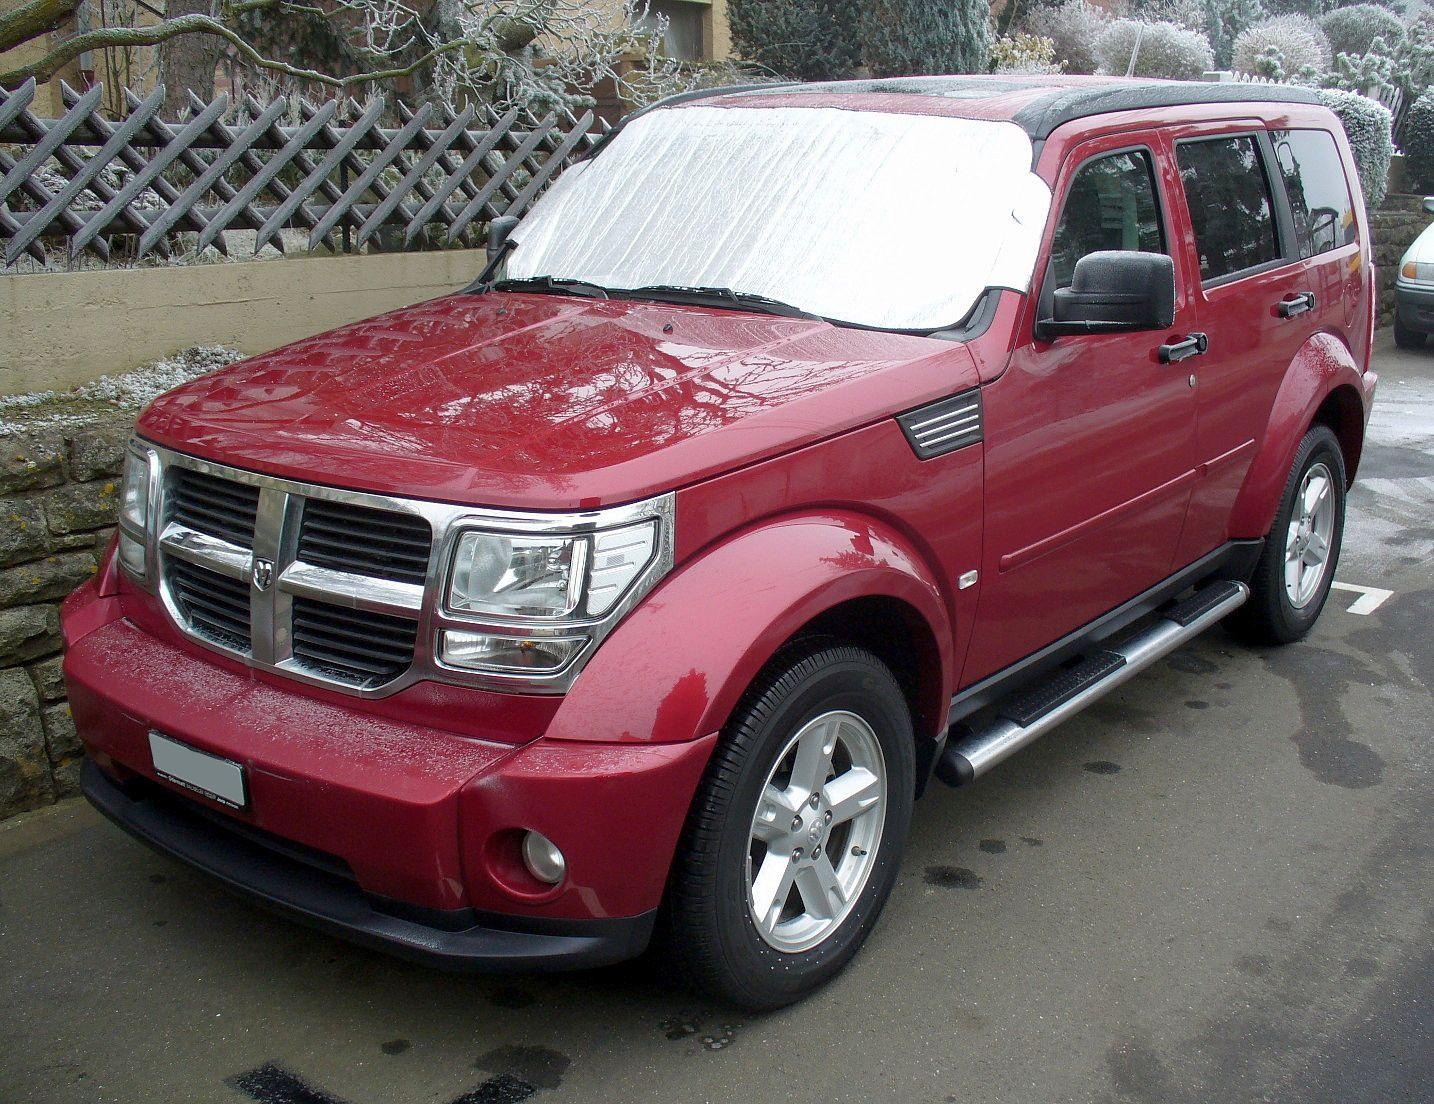 file dodge nitro sxt 4x4 crd jpg wikimedia commons. Black Bedroom Furniture Sets. Home Design Ideas